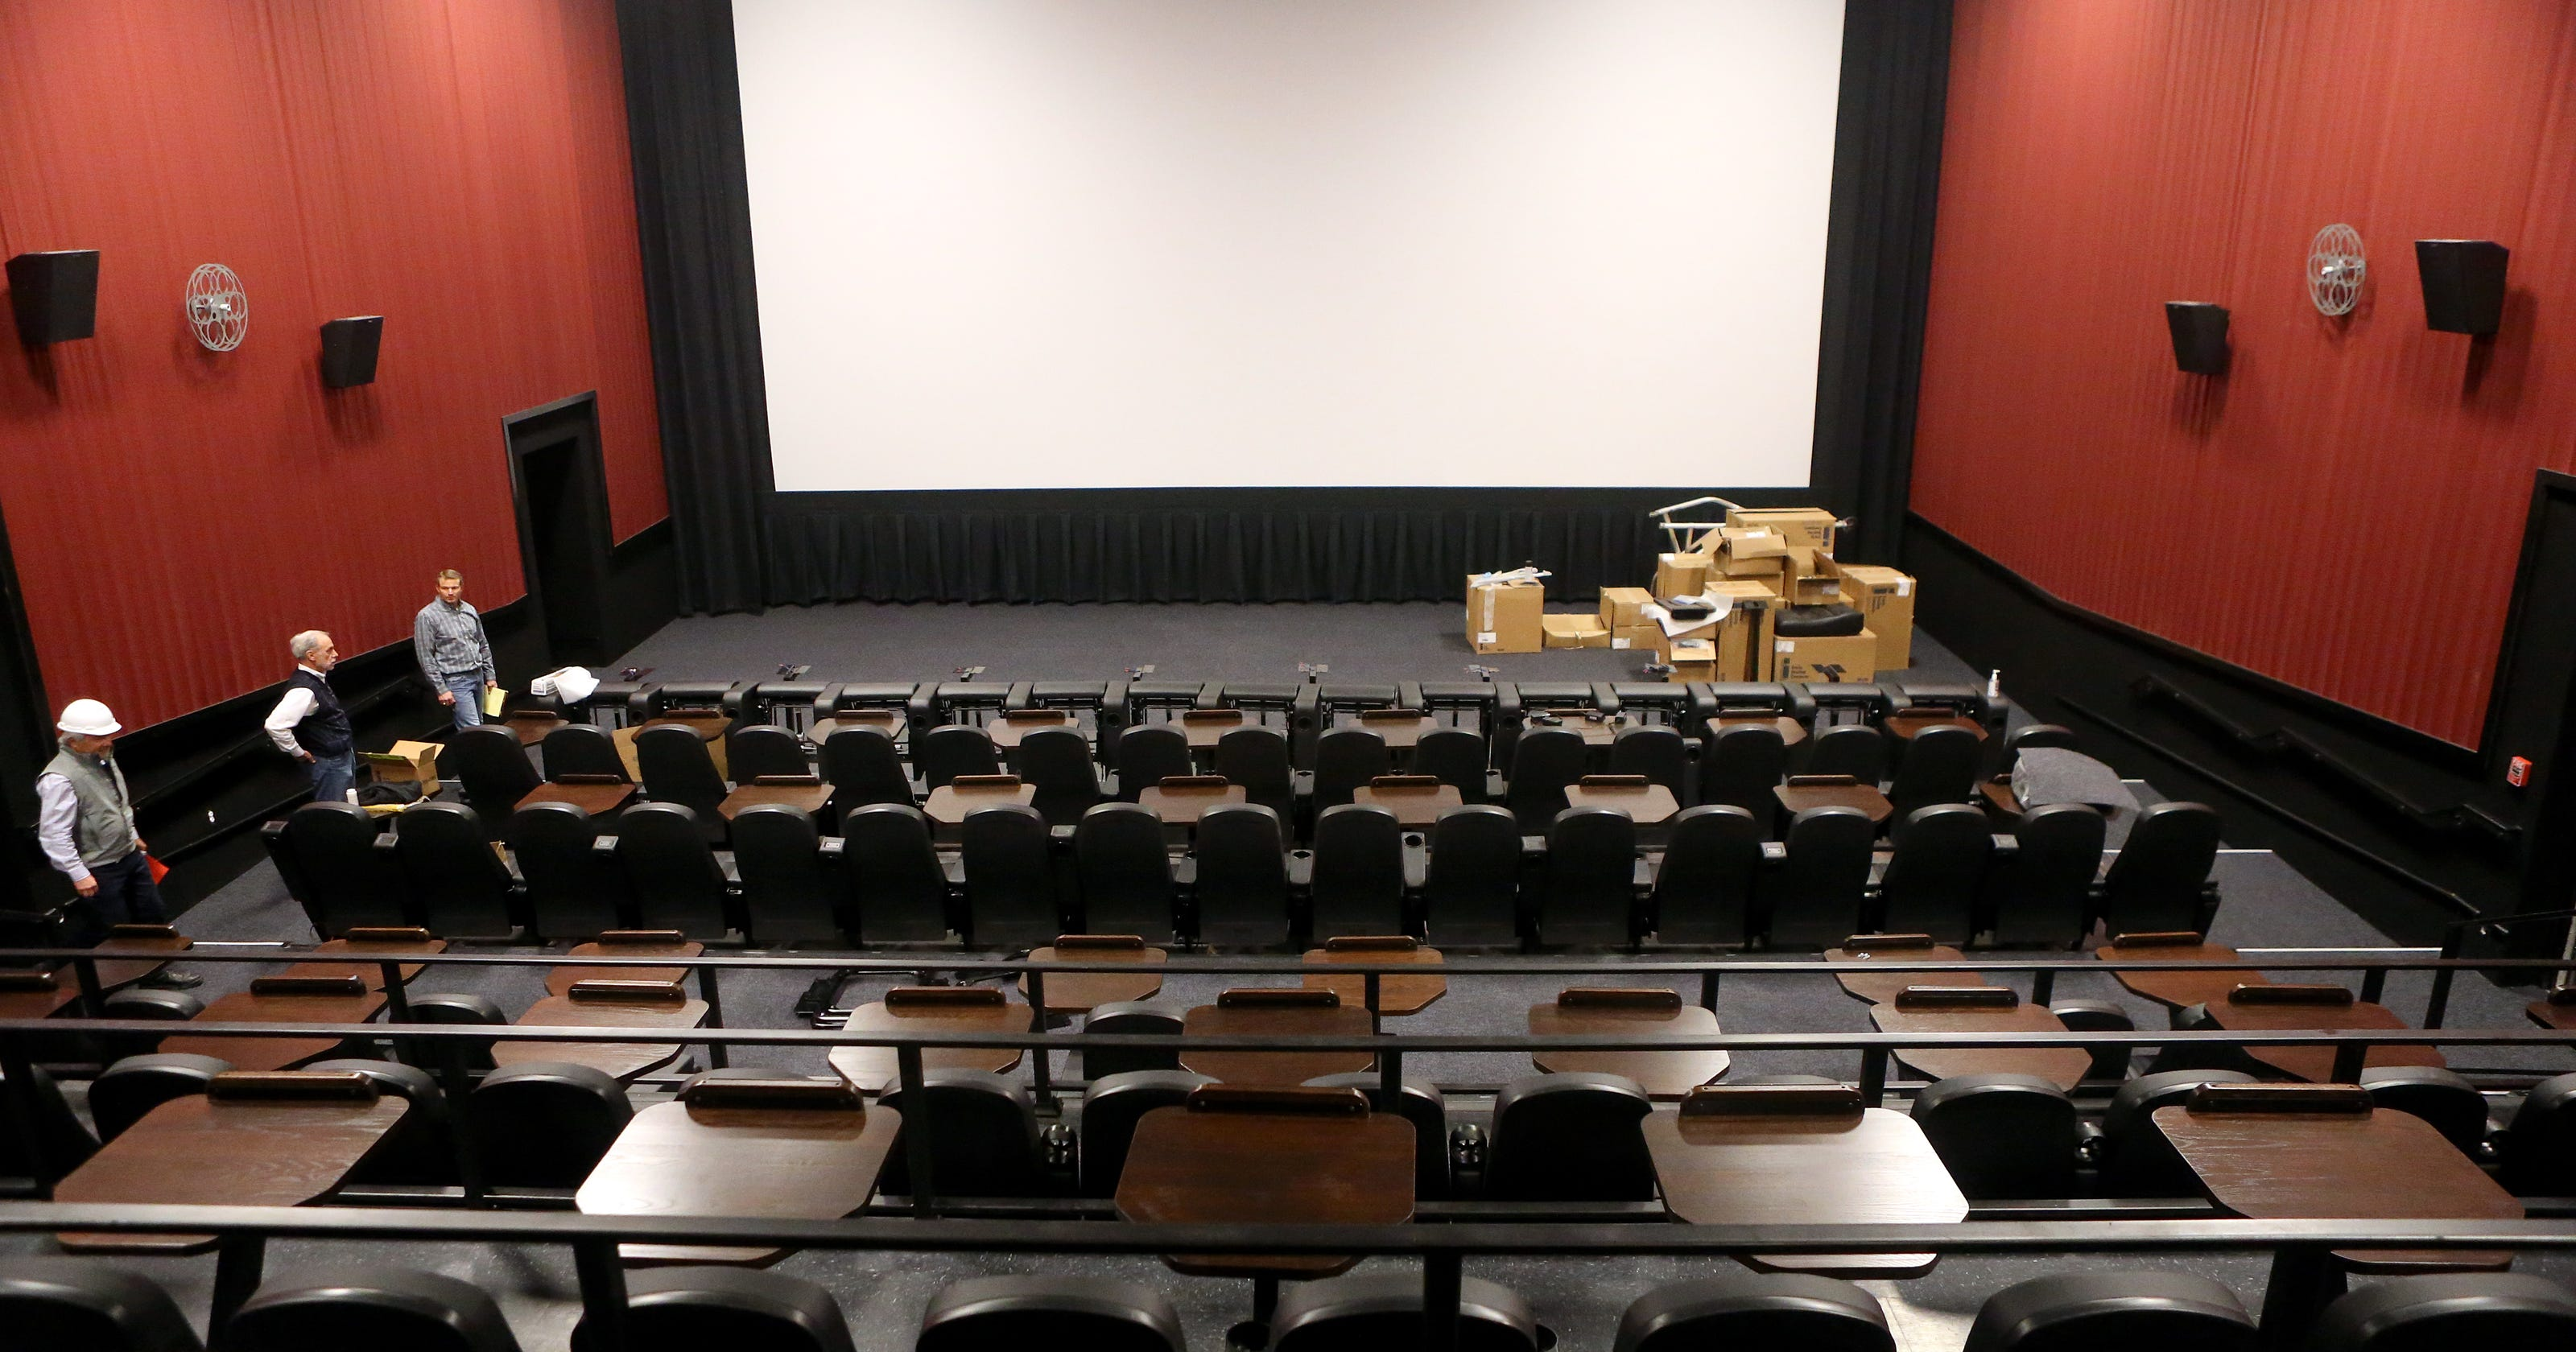 Alamo Drafthouse officials host tour, announce opening date